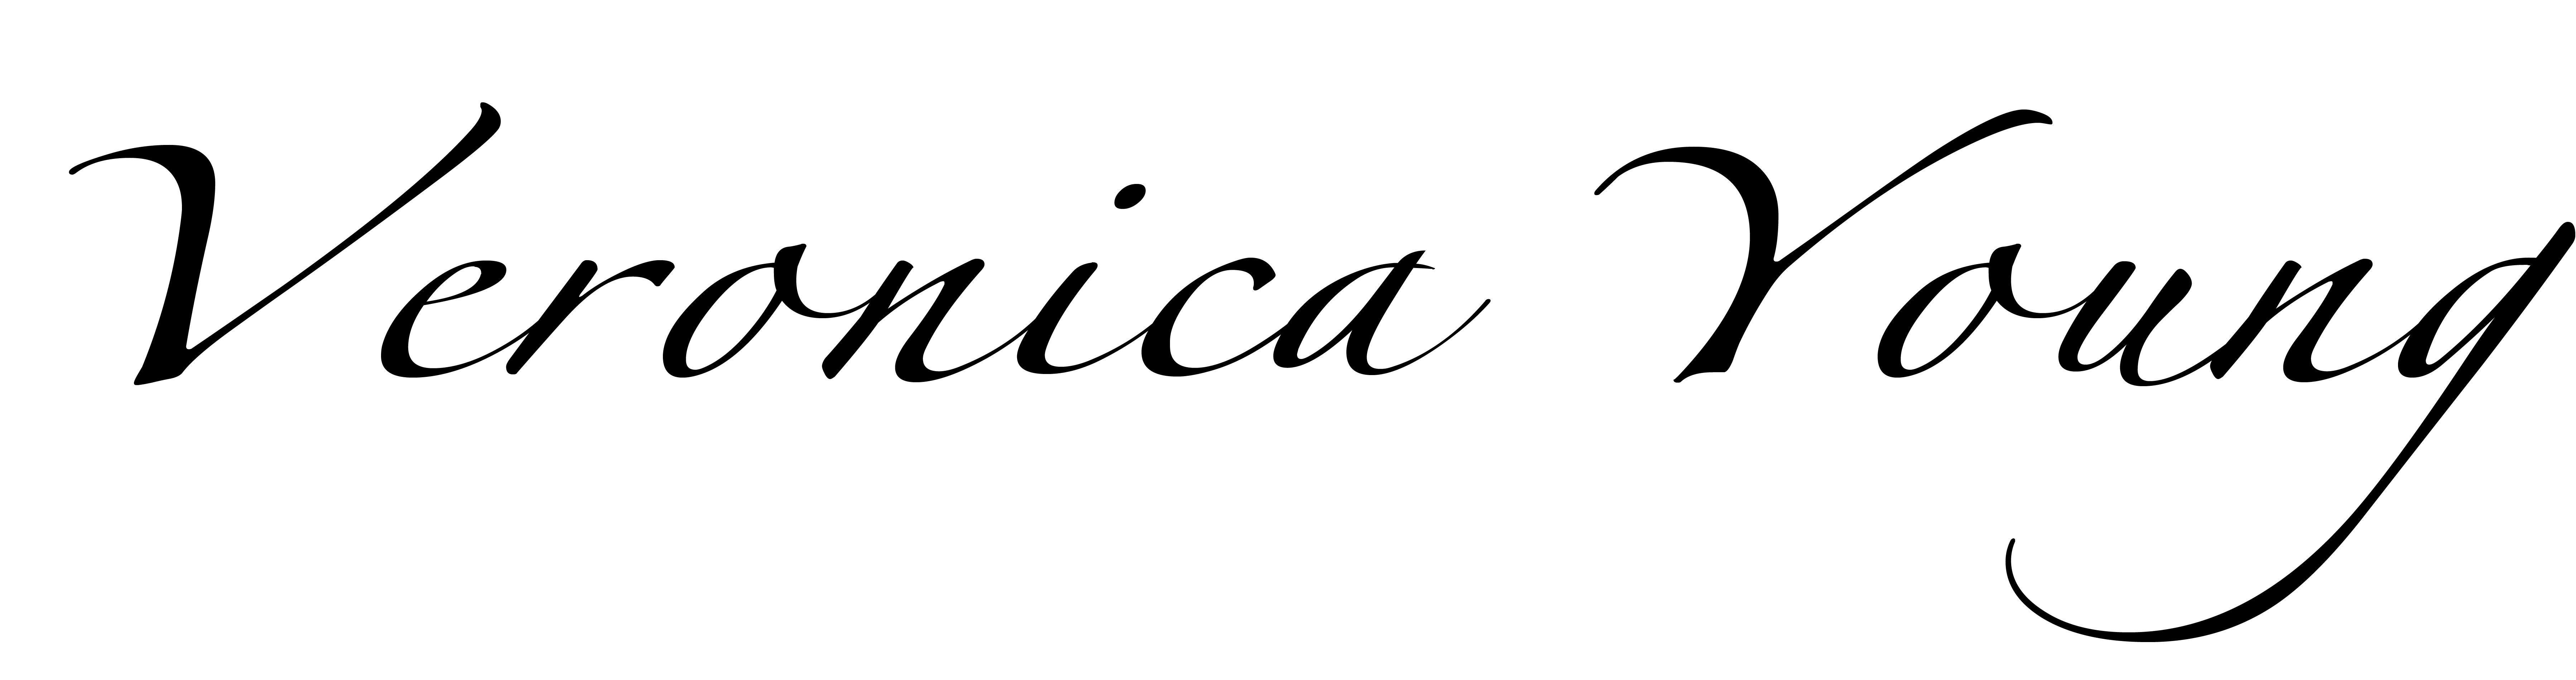 Veronica Young's Signature